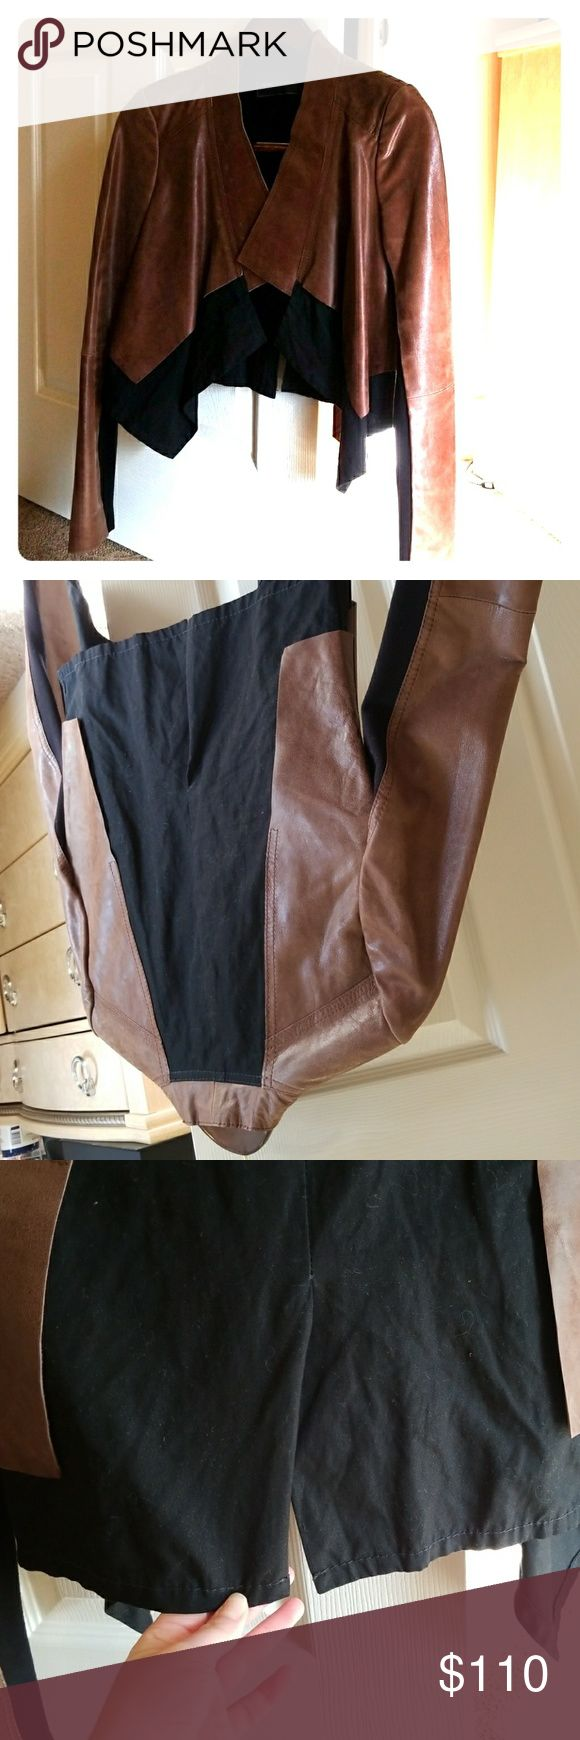 """BCBGMAXAZRIA brown and black lamb leather jacket This is a brown and black lamb leather jacket that I wore a handful of time. Please see posted tag to see that is 100% lamb leather on brown areas of jacket. Its a black material on the bottom. I was a size 4 with a larger bust when I wore this. I think you could easily size up or down with this. Has no stains, but has some natural wear but it was like that upon purchase, its part of """"the look"""" for the jacket. Small bend of material in pic…"""